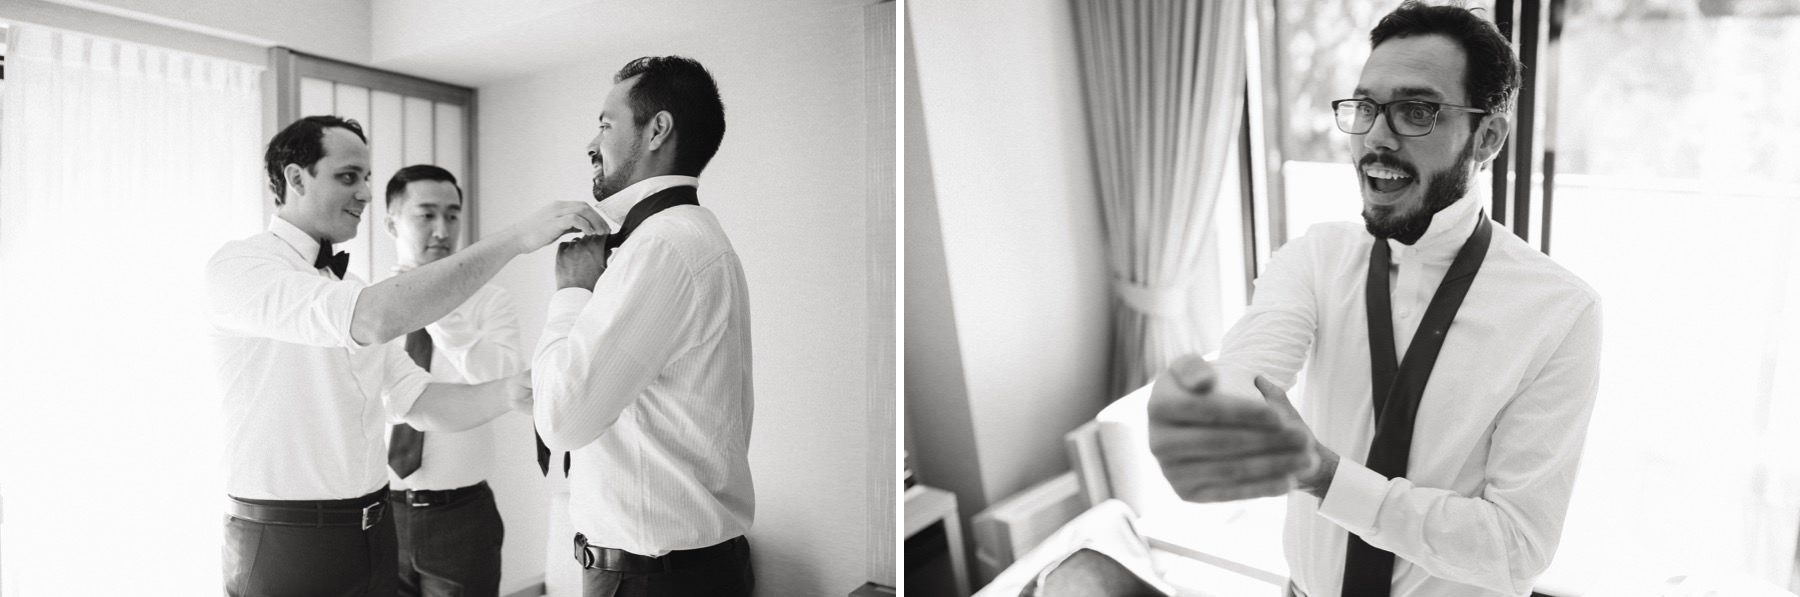 documentary wedding photographer Kyoto